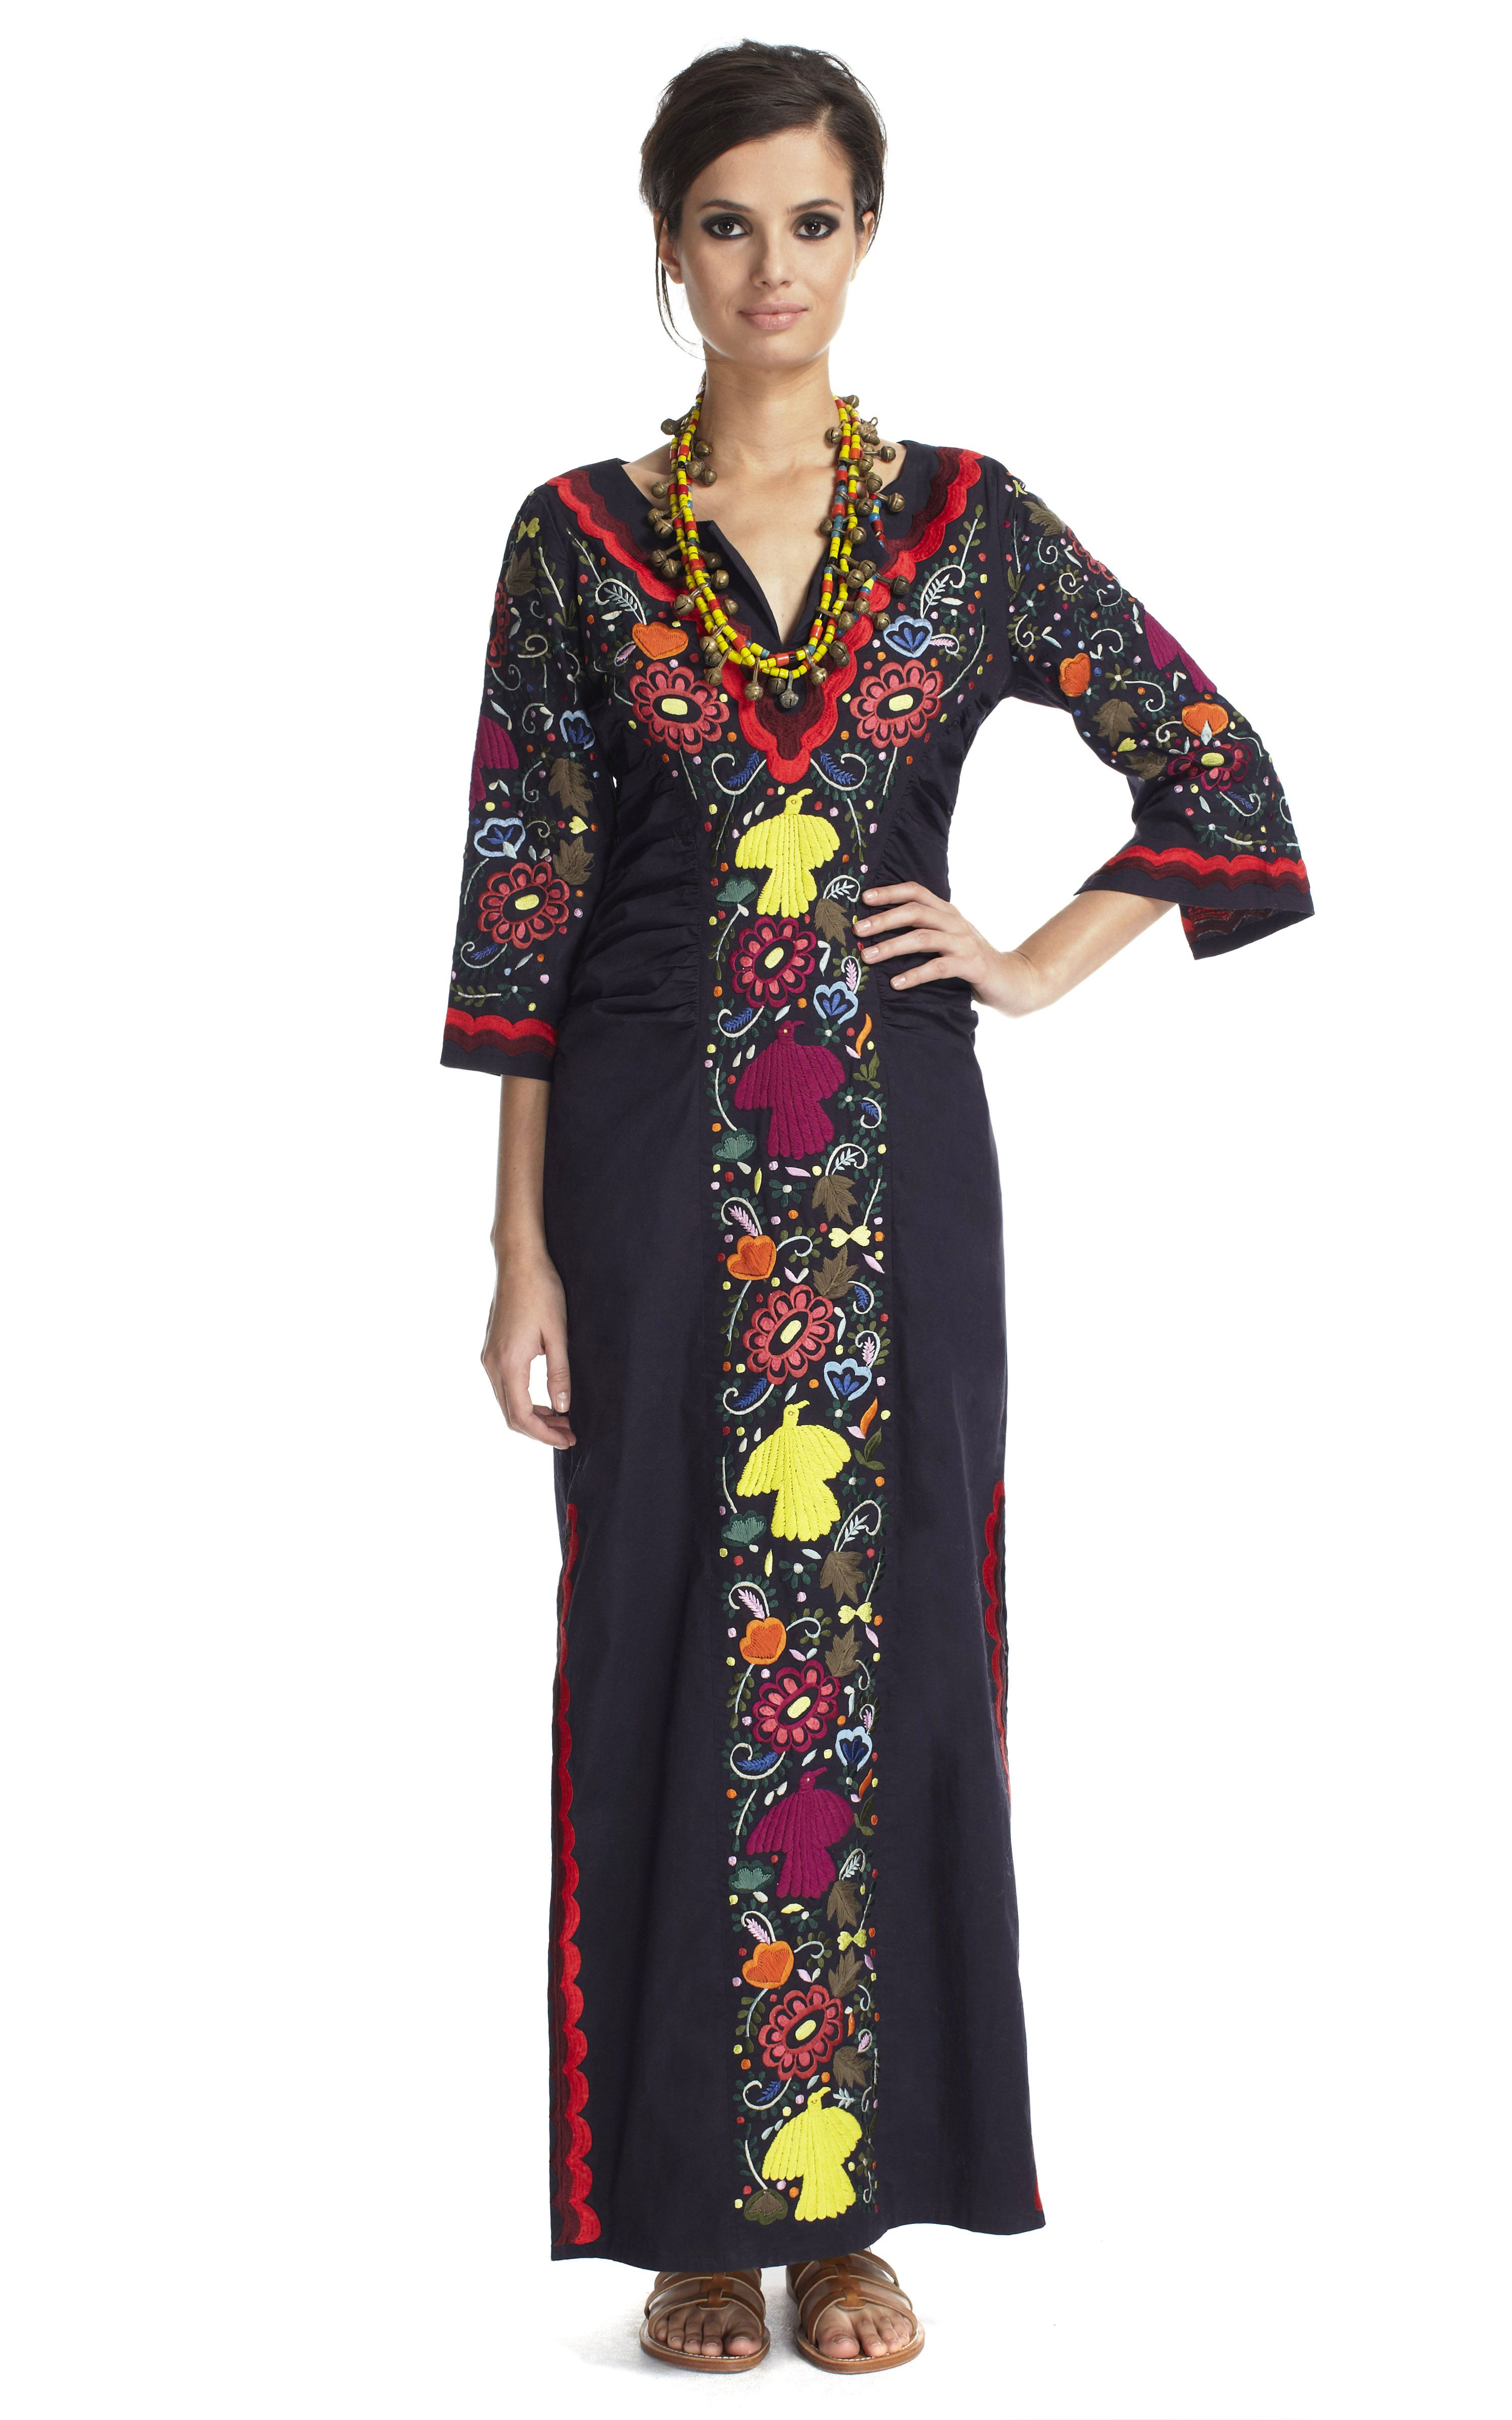 Anouk Dress   My style - haves, want and wish list  )   Pinterest   Mode fa523cca5798